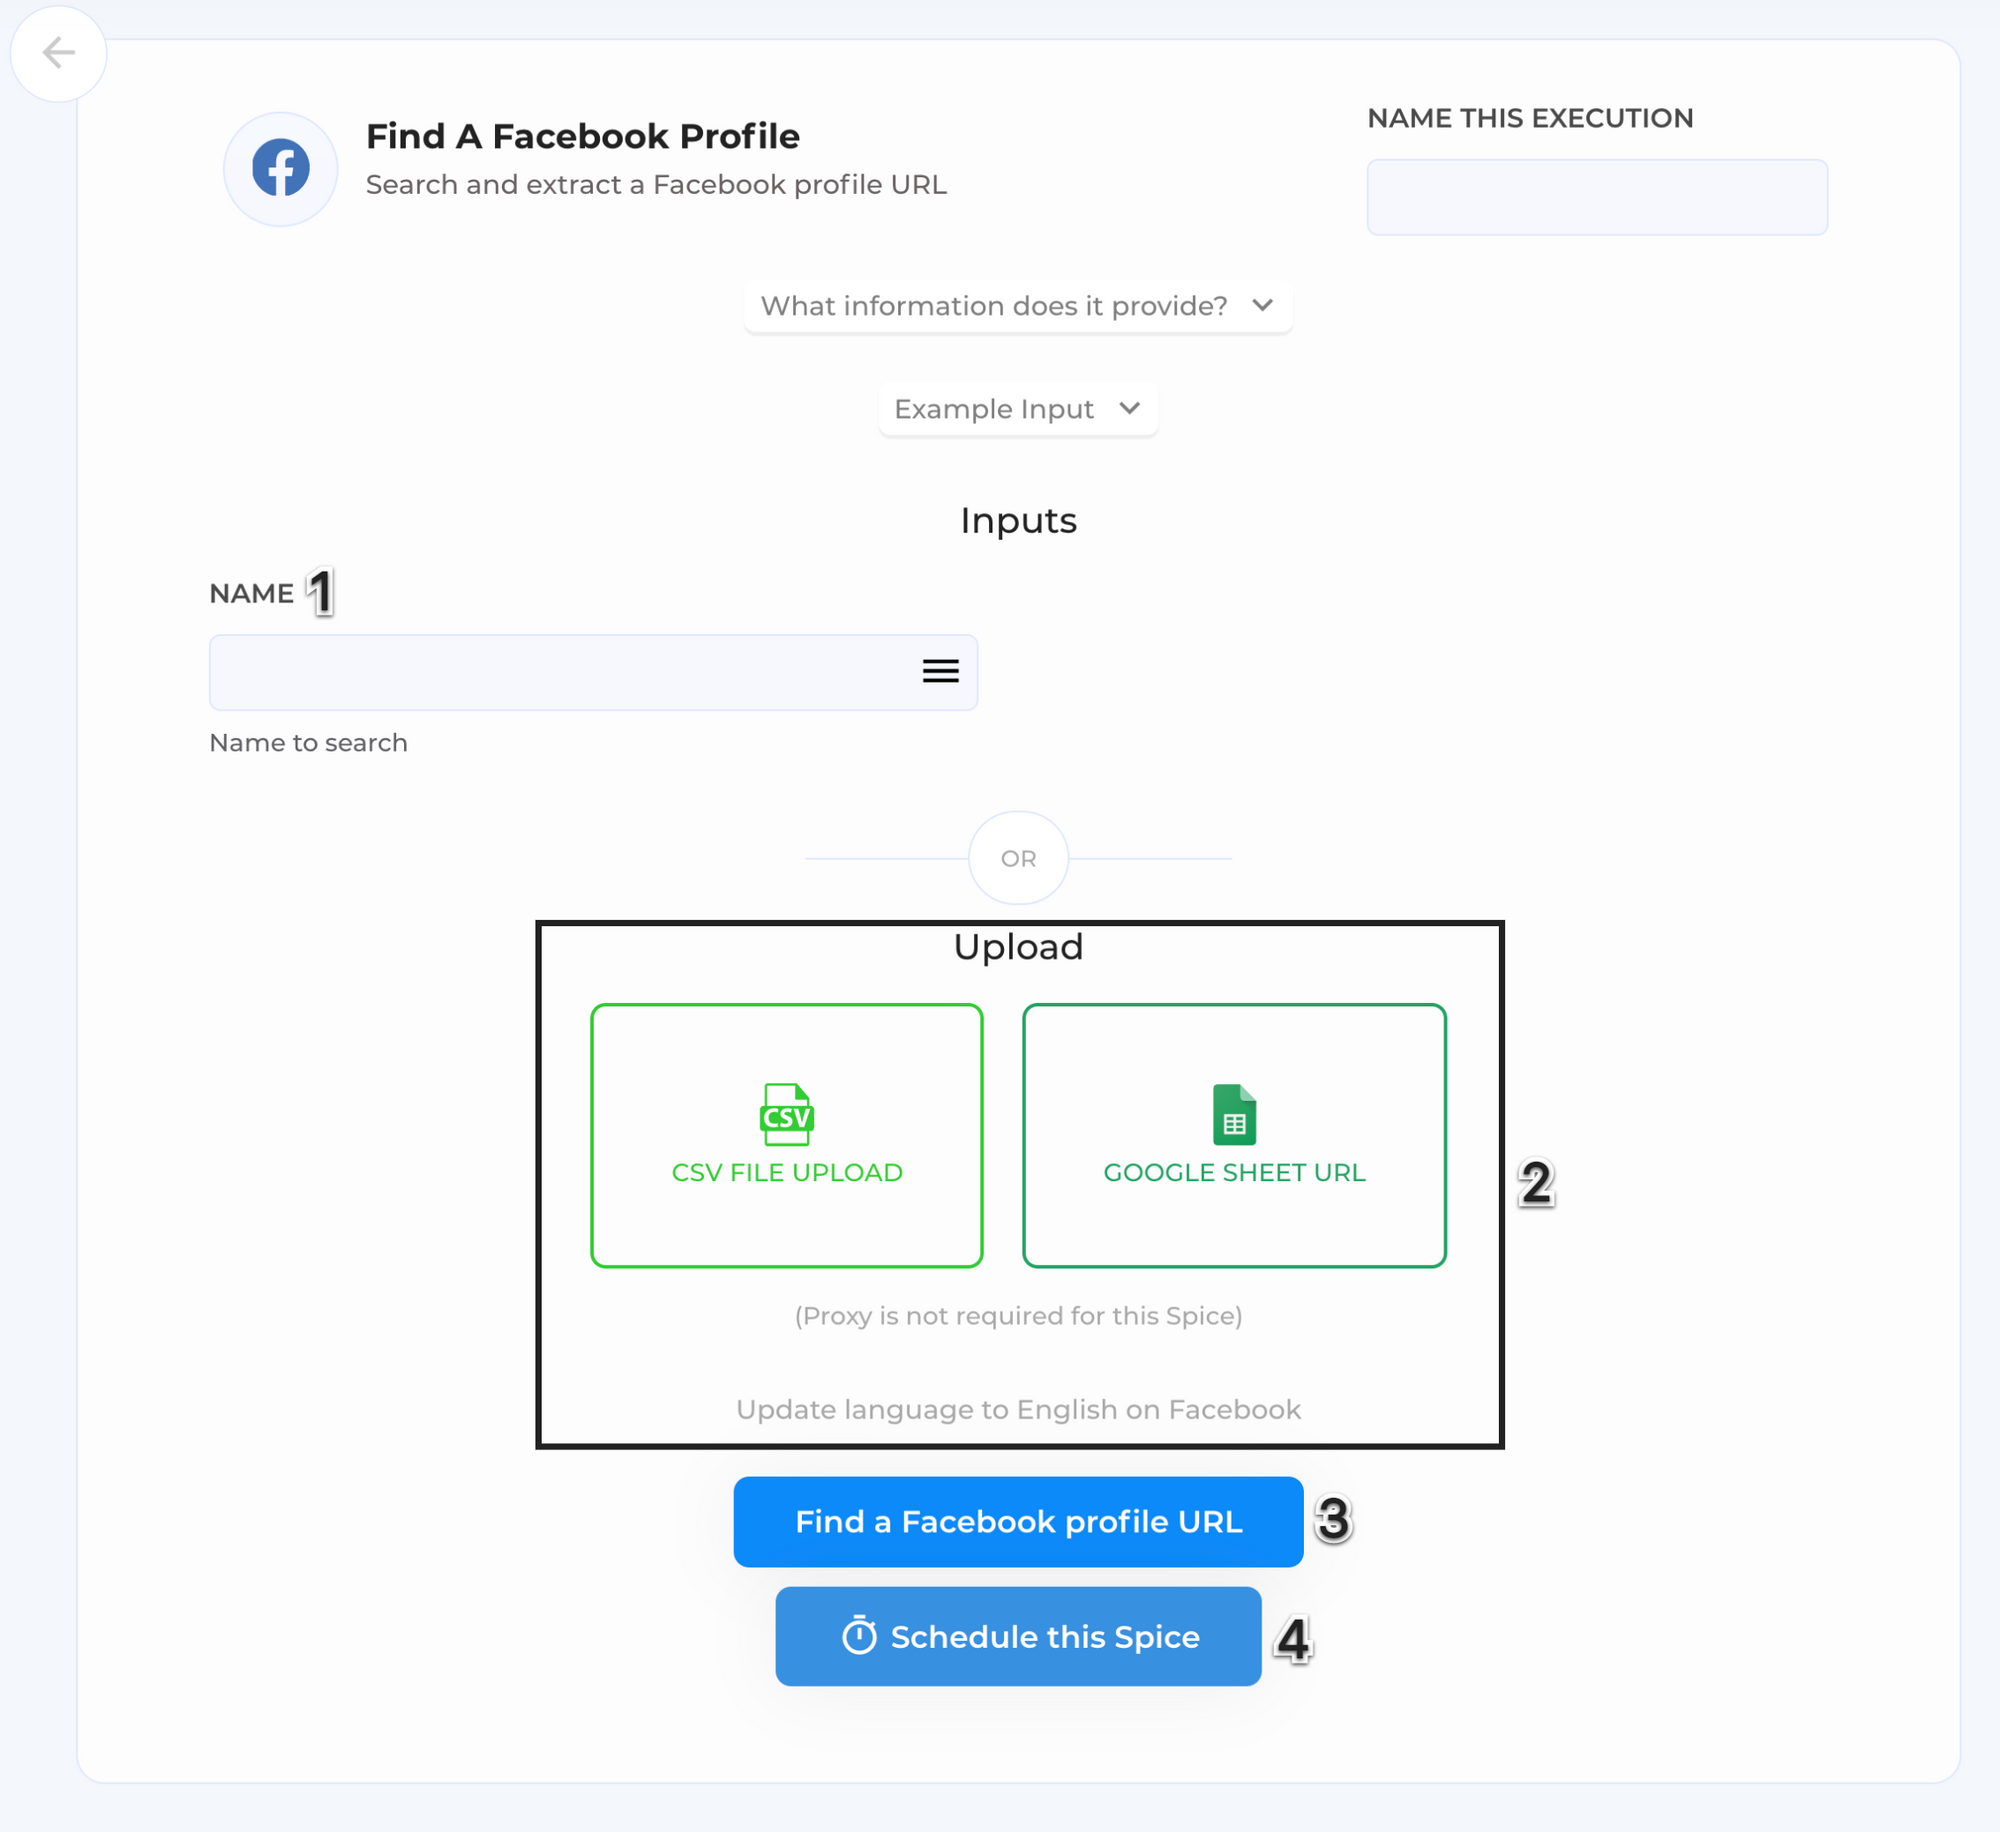 Find-A-Facebook-Profile-Automation-page